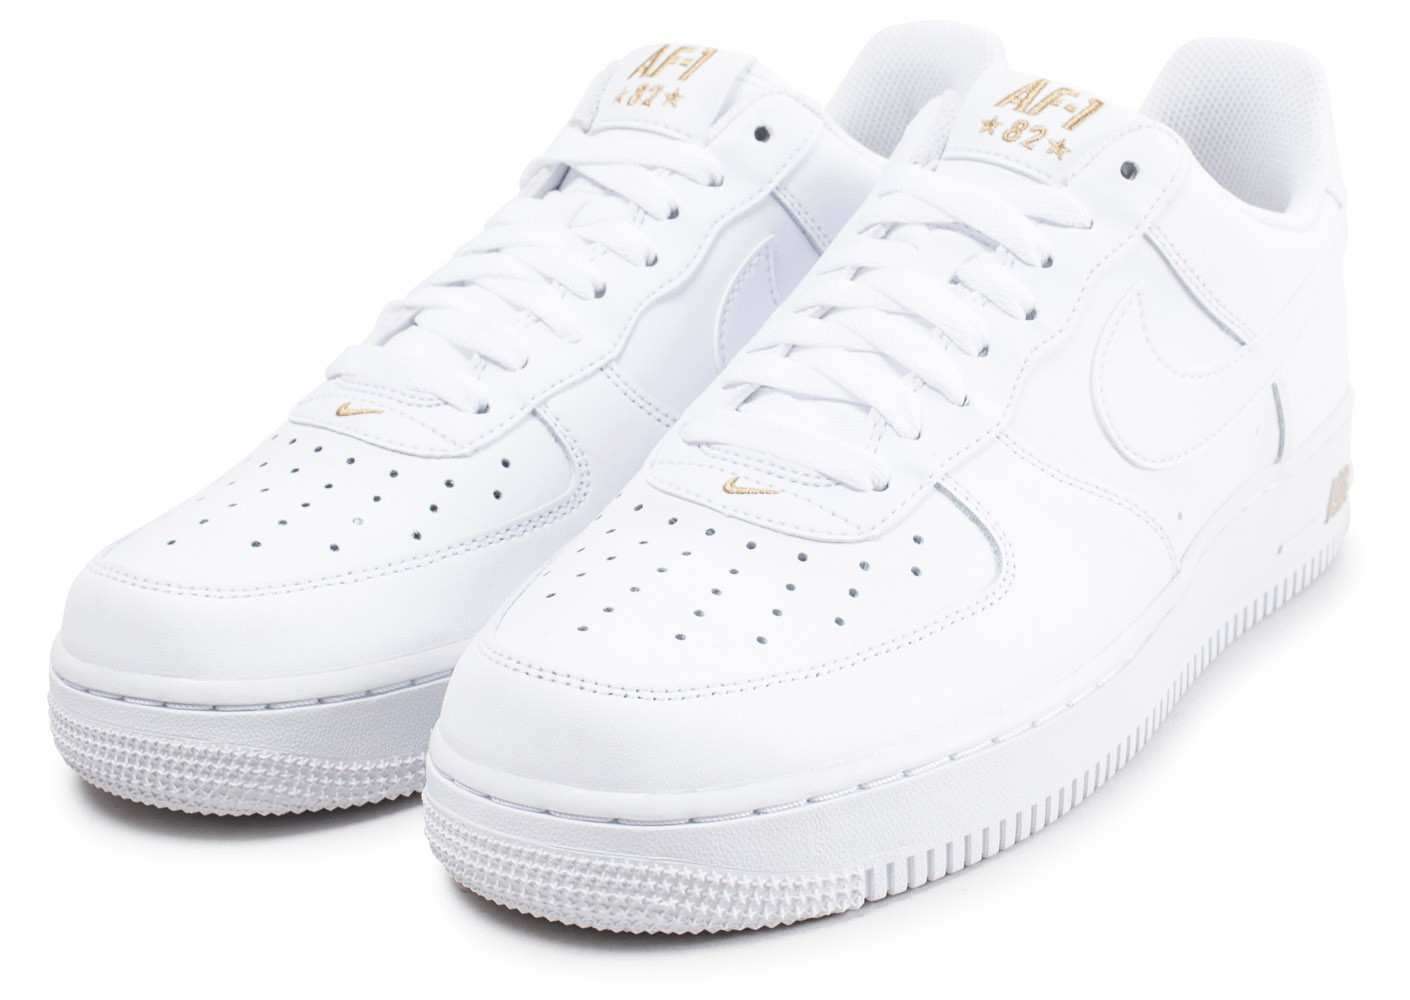 Nouveaux produits 03749 fc58f new zealand nike air force 1 low blanc or 31881 691da